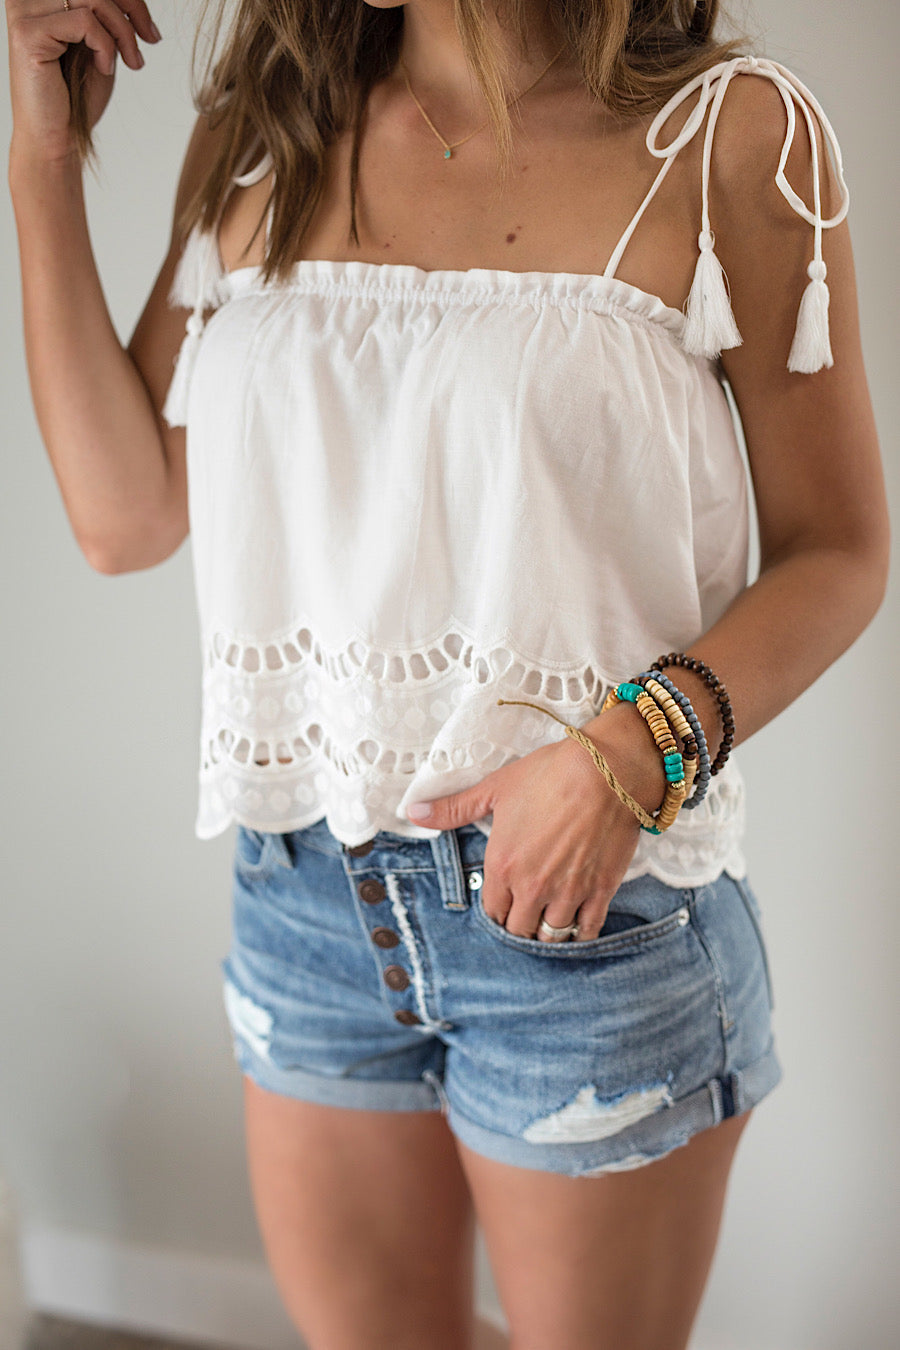 Scalloped Eyelet Cami Tank Top